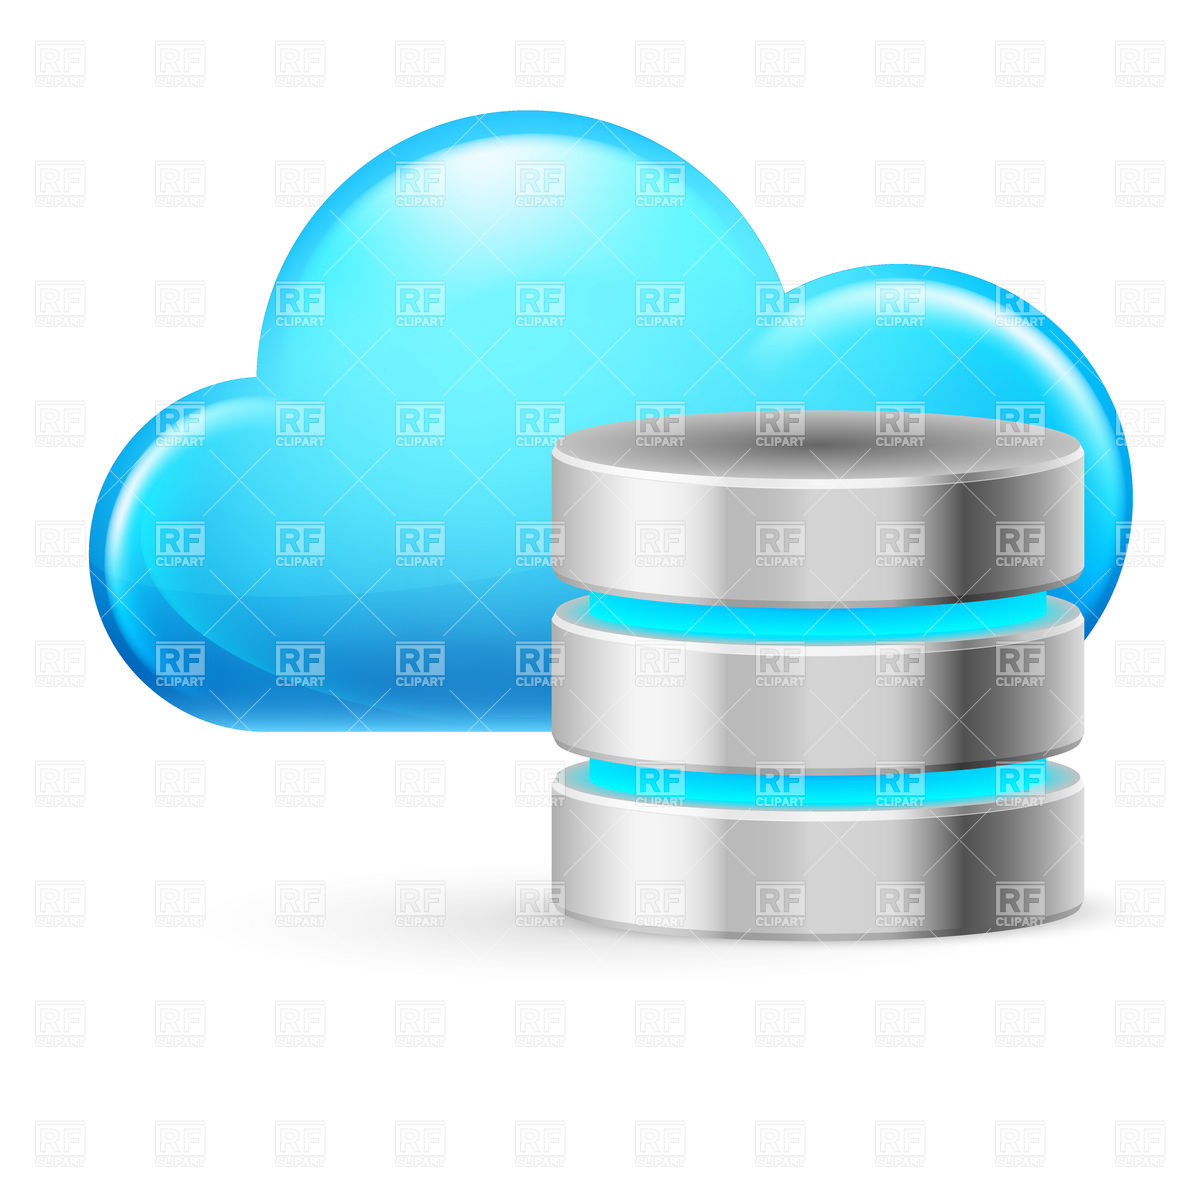 Cloud Computing Icon With Symbolic Database 9172 Icons And Emblems